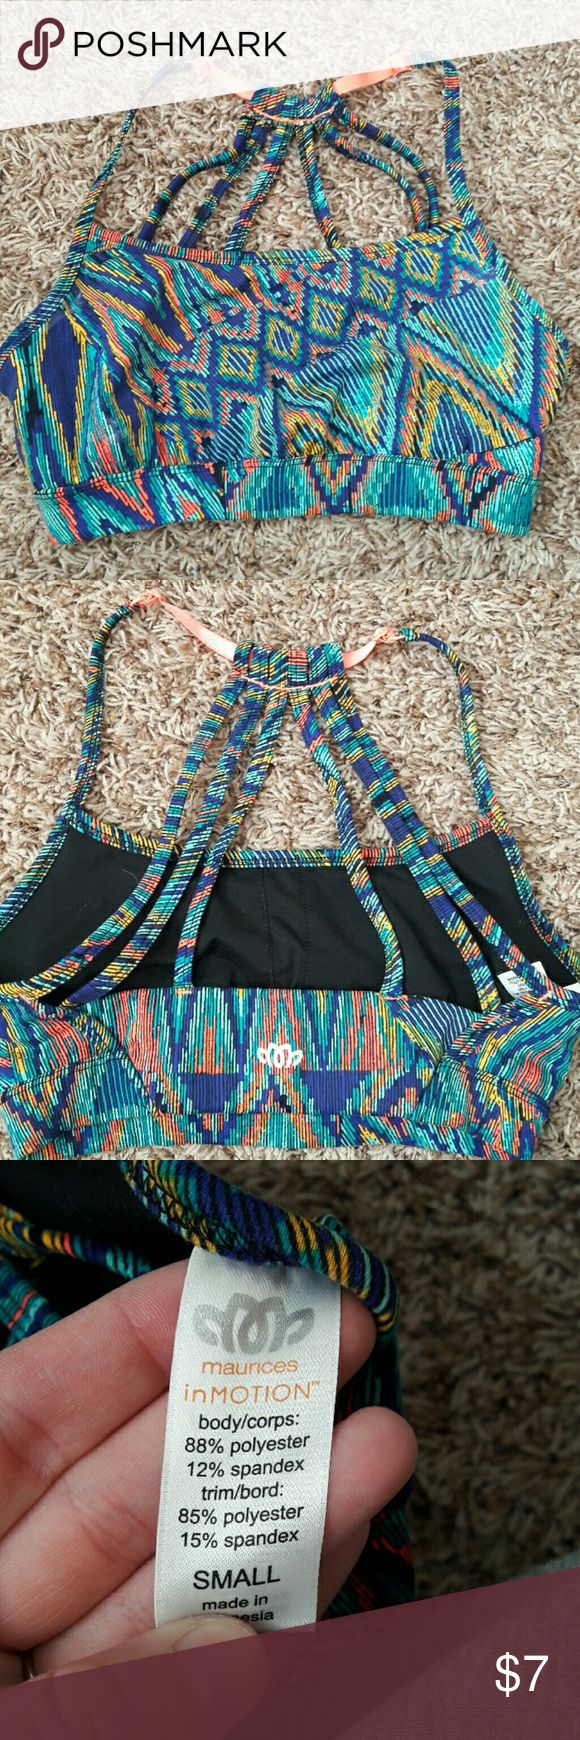 Multi colored sports bra Purple, blue, teal, yellow and coral patterned sports bra with scrappy back. NWOT Maurices Intimates & Sleepwear Bras